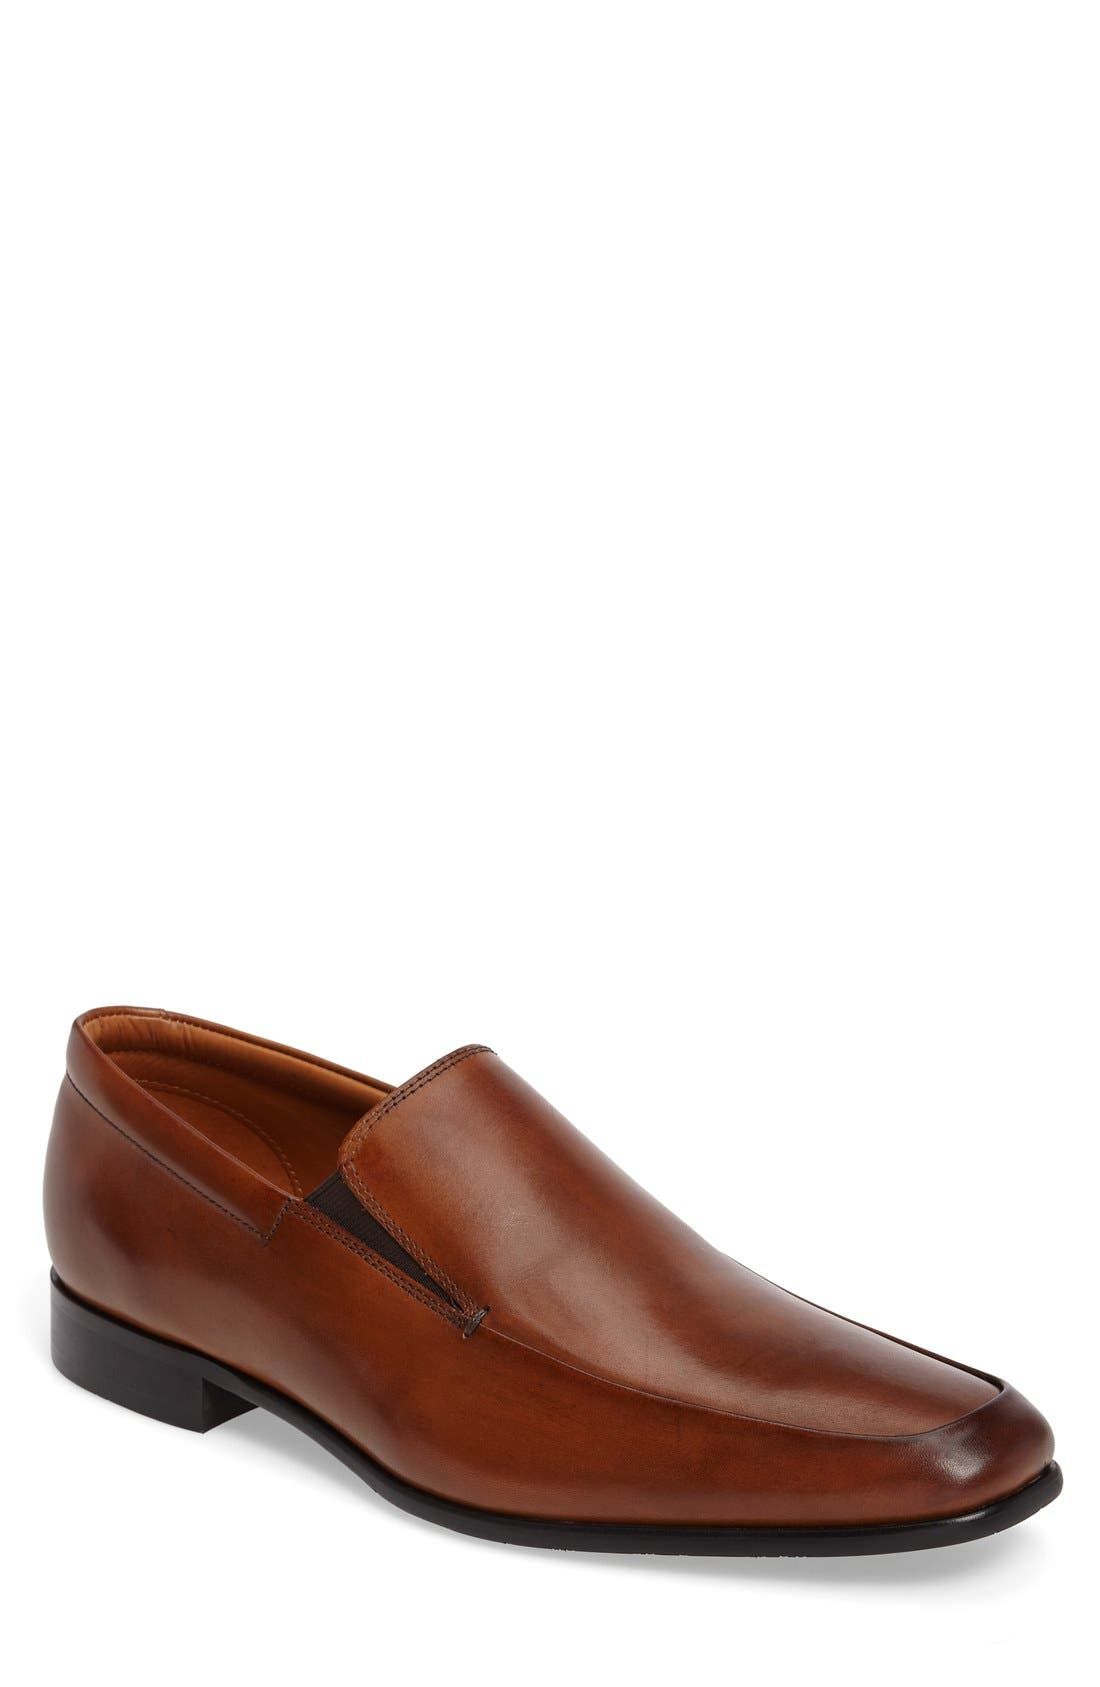 'Elliot' Venetian Loafer,                         Main,                         color, Cognac